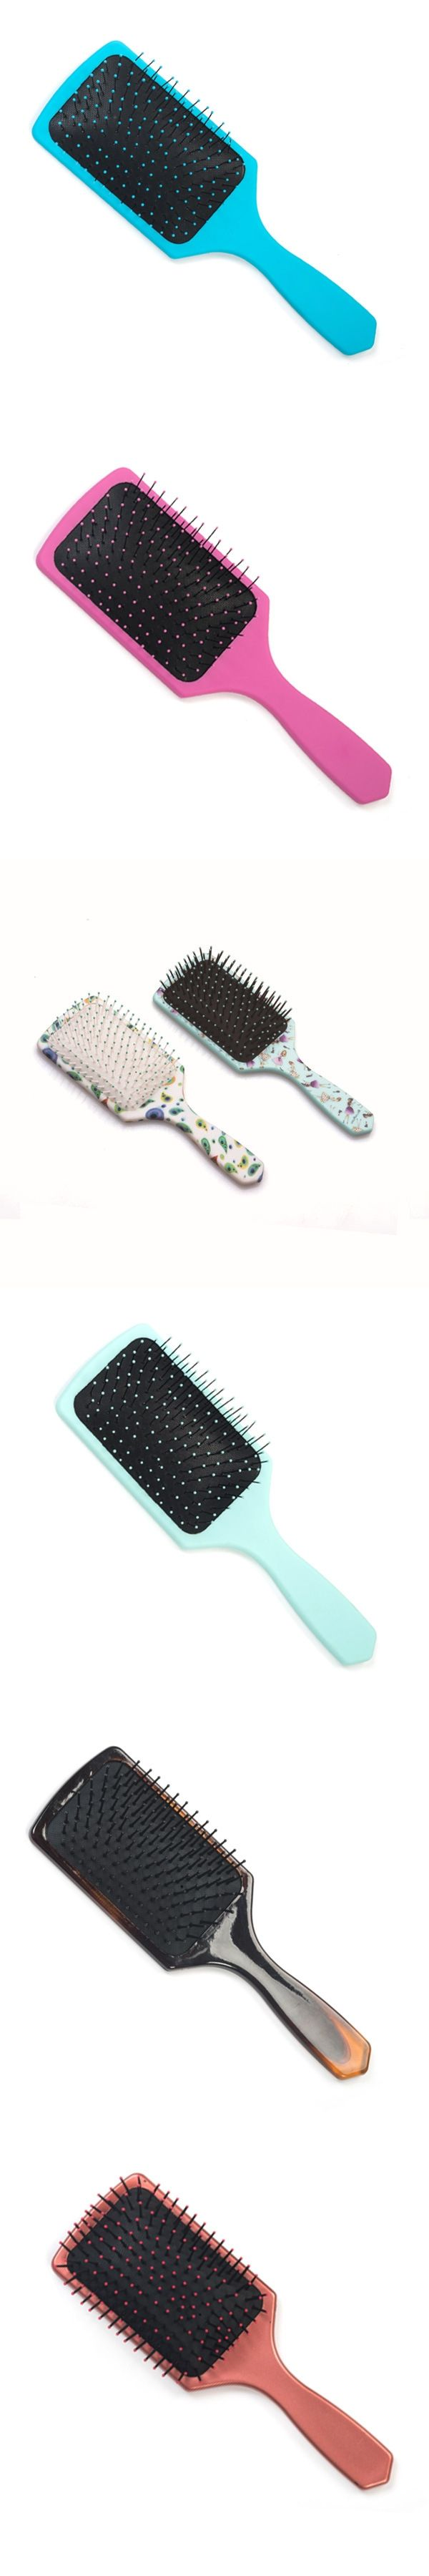 Hair Extension Loop Brushhair Comb For Tangled Hair Wig Care Comb